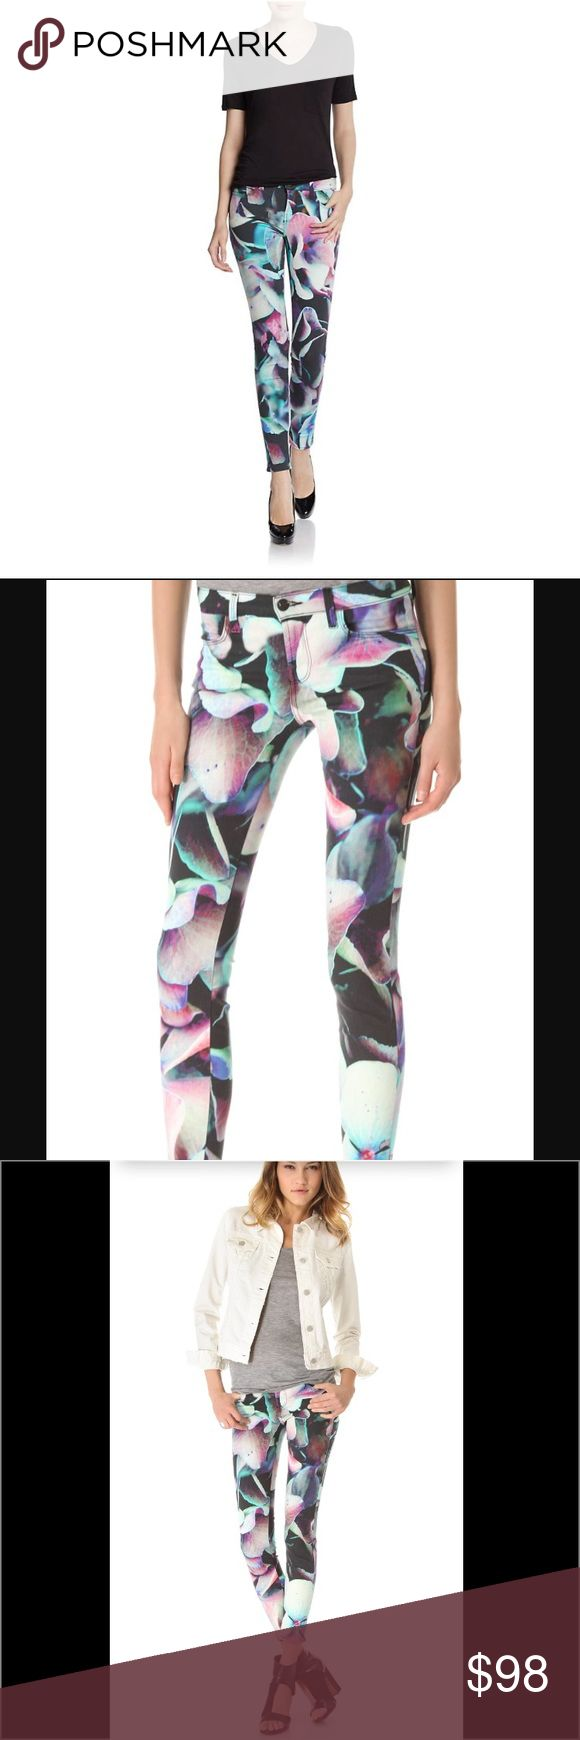 J Brand Floral Skinny Jeans J Brand Floral Skinny Jeans.  Adorable to wear this Spring and Summer to your favorite festival or outing! J Brand Jeans Skinny